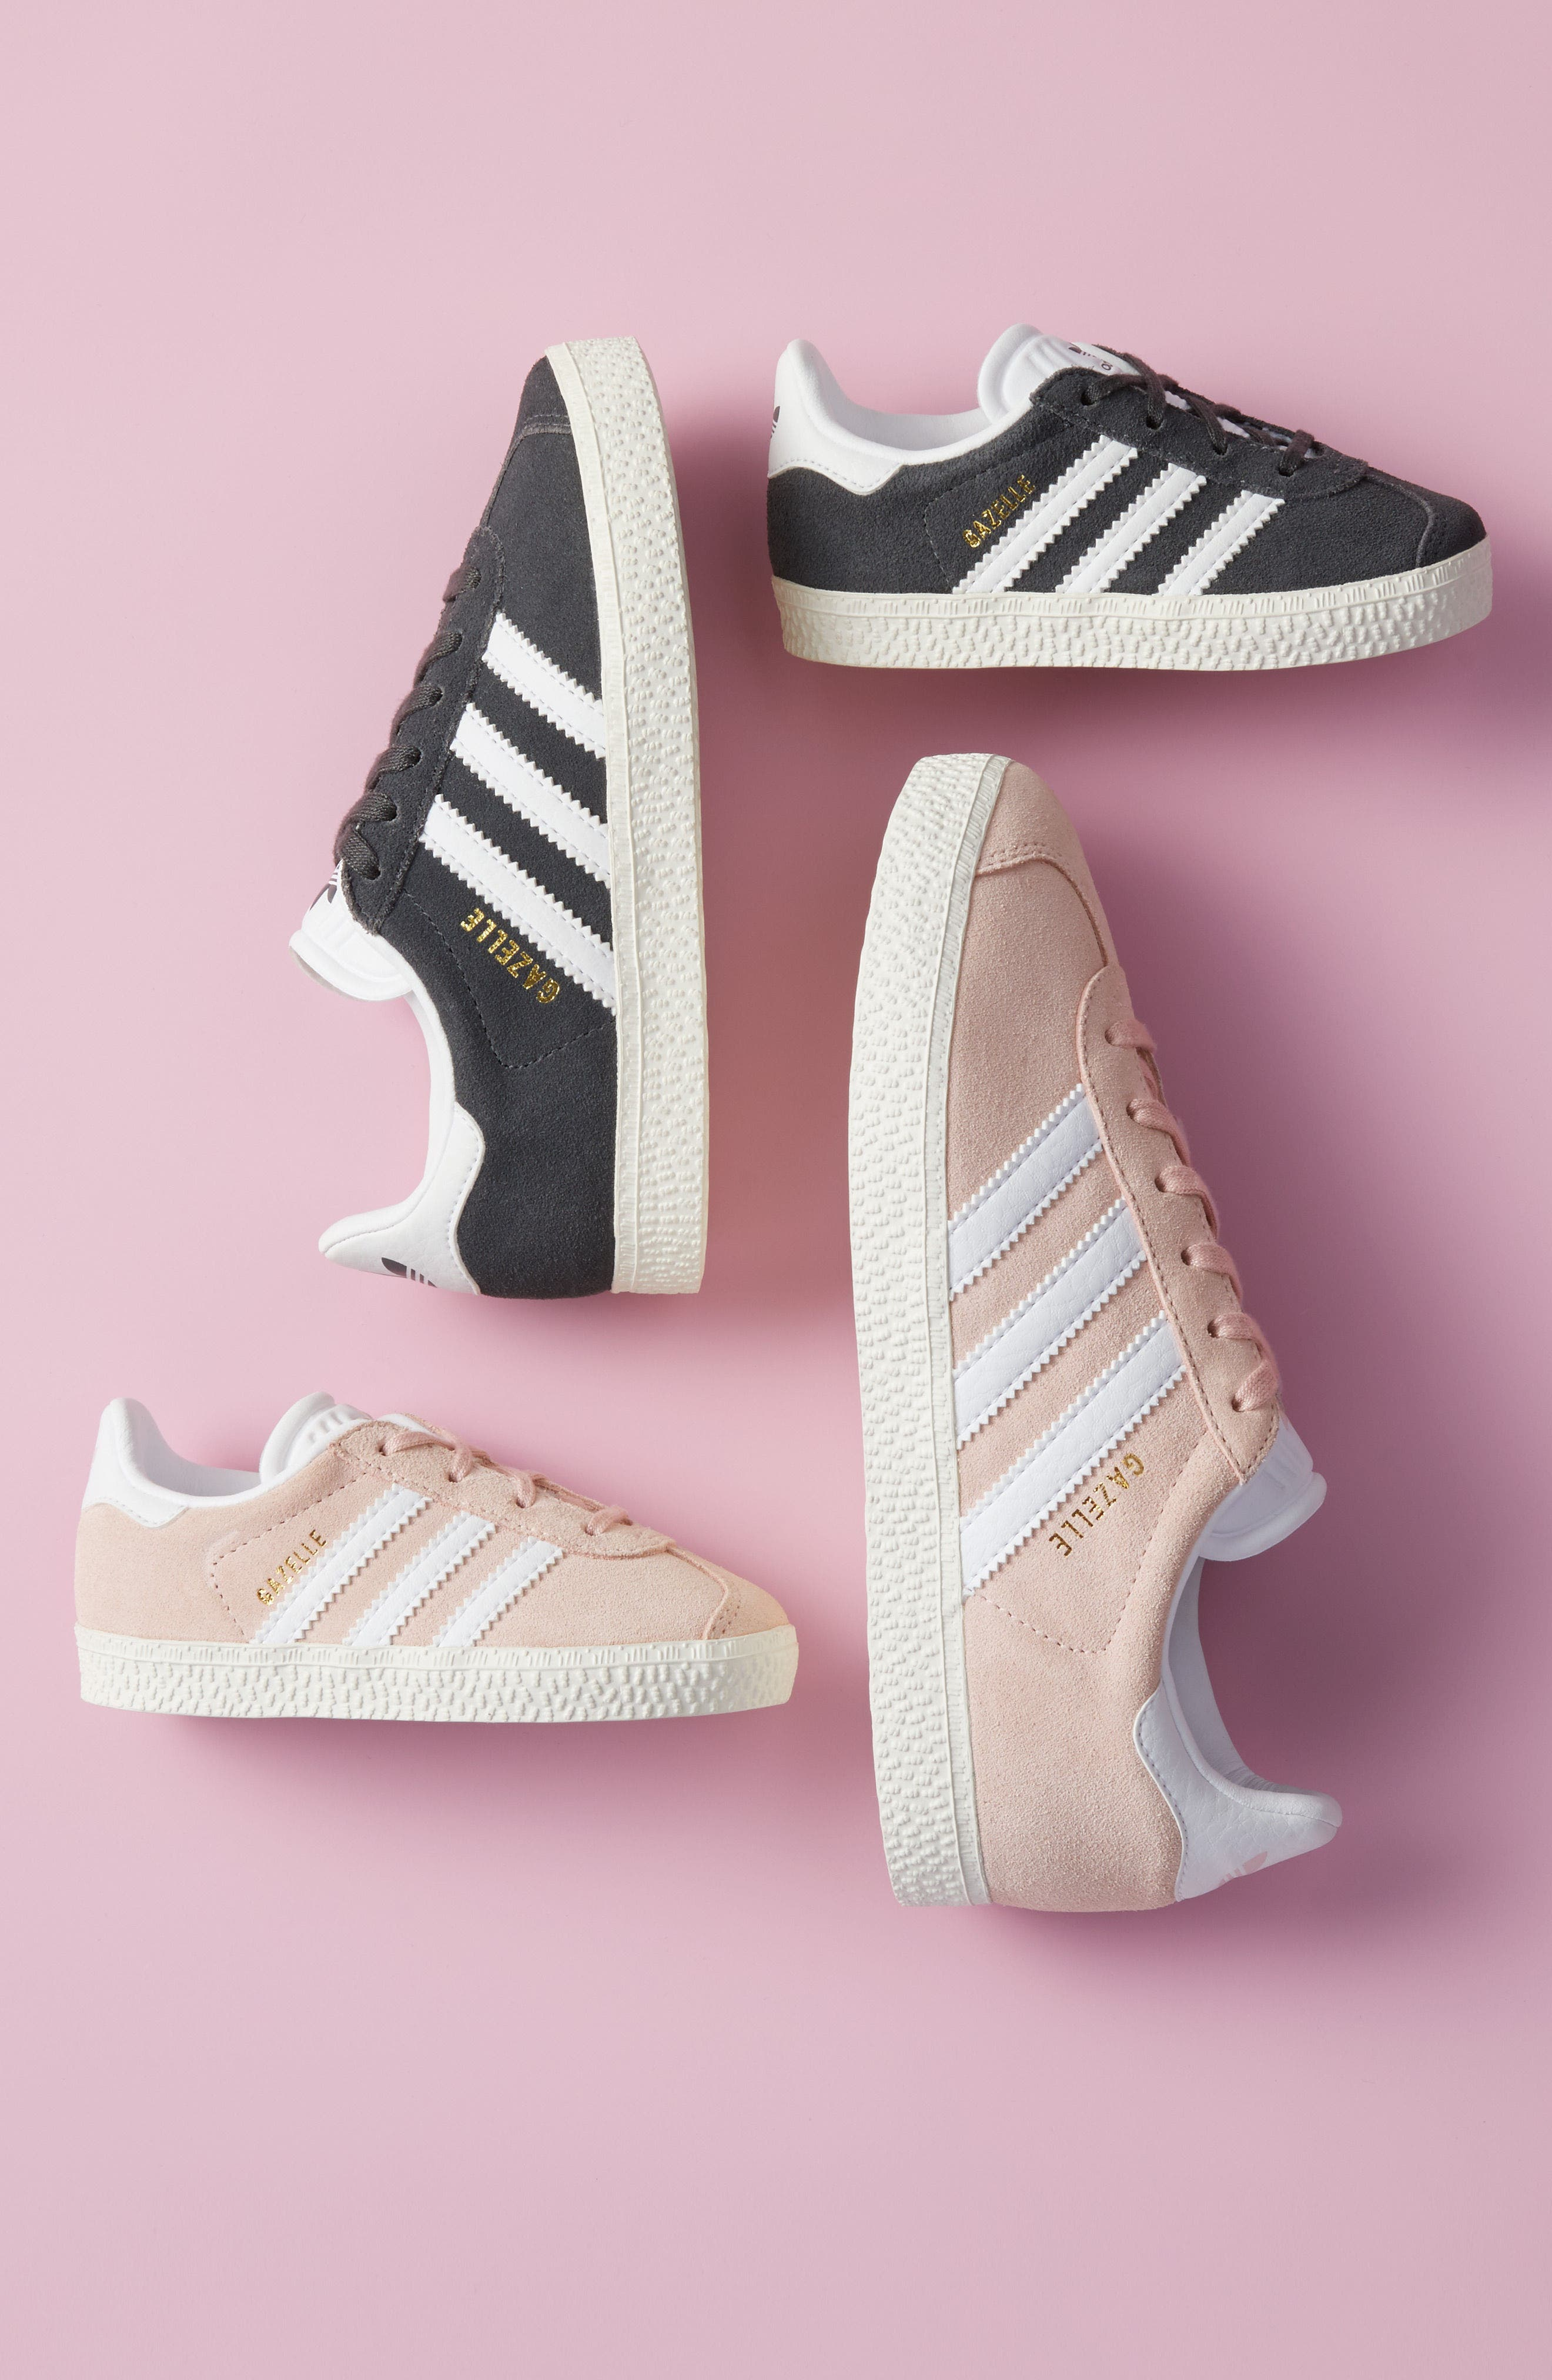 Gazelle Sneaker,                             Alternate thumbnail 14, color,                             682